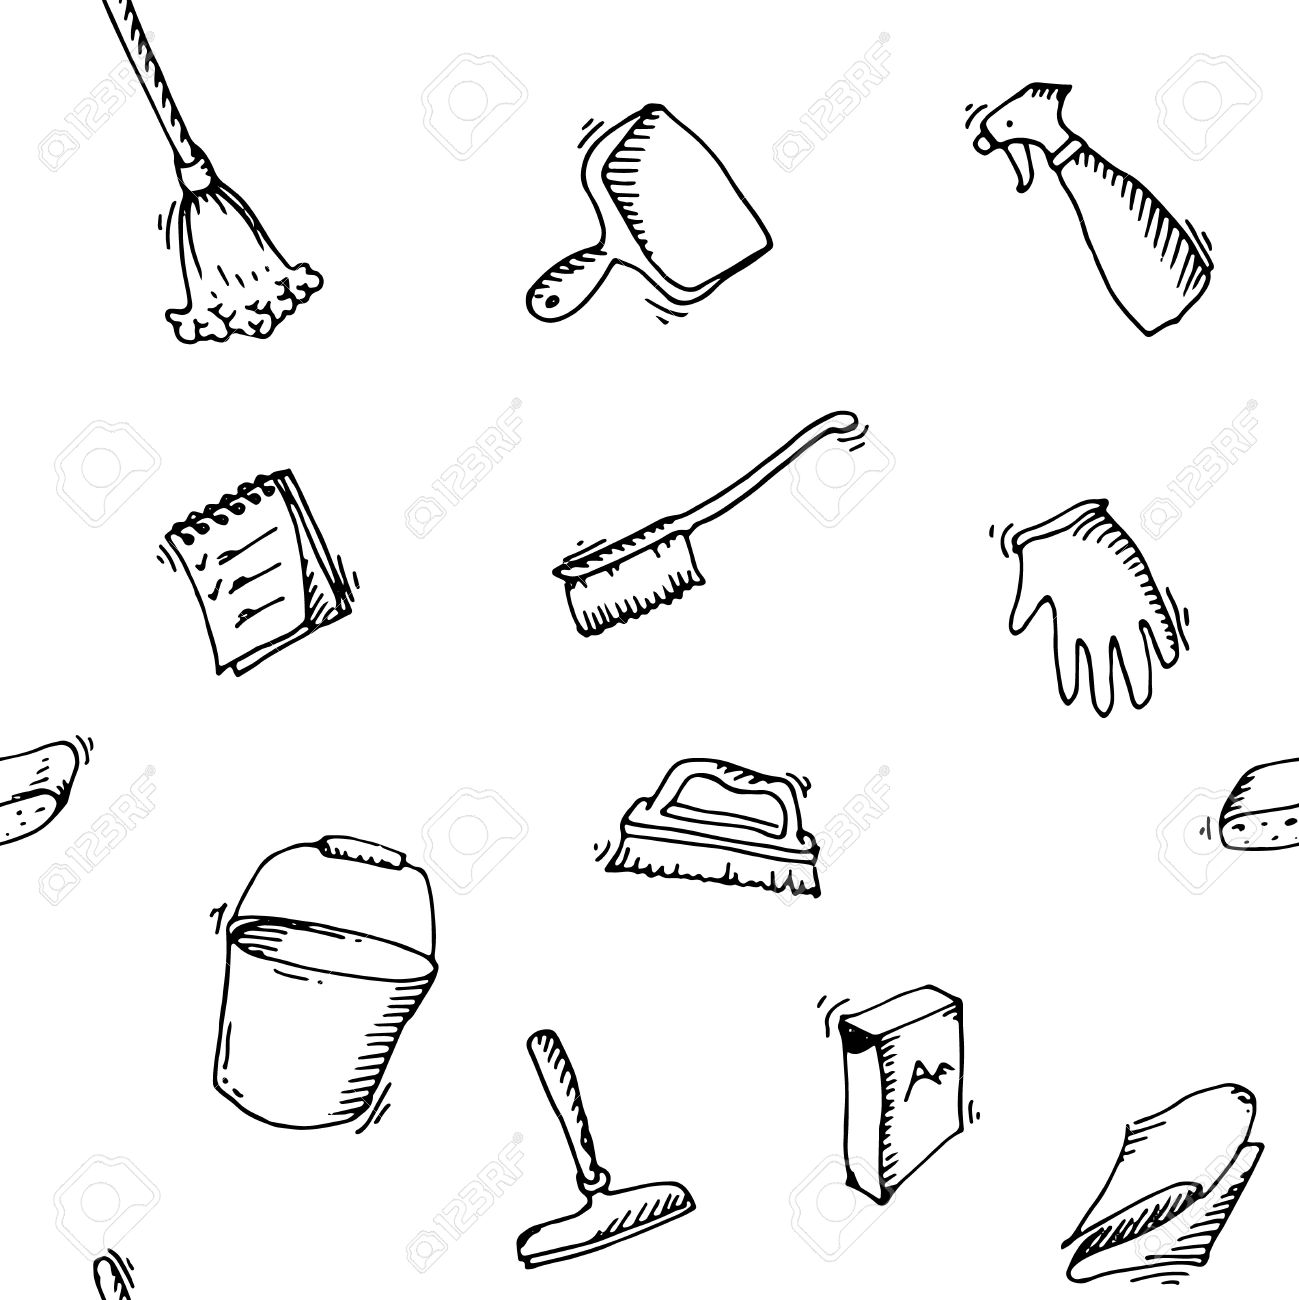 1299x1300 Interior Design Drawing Of Person With Broom Clipart Black